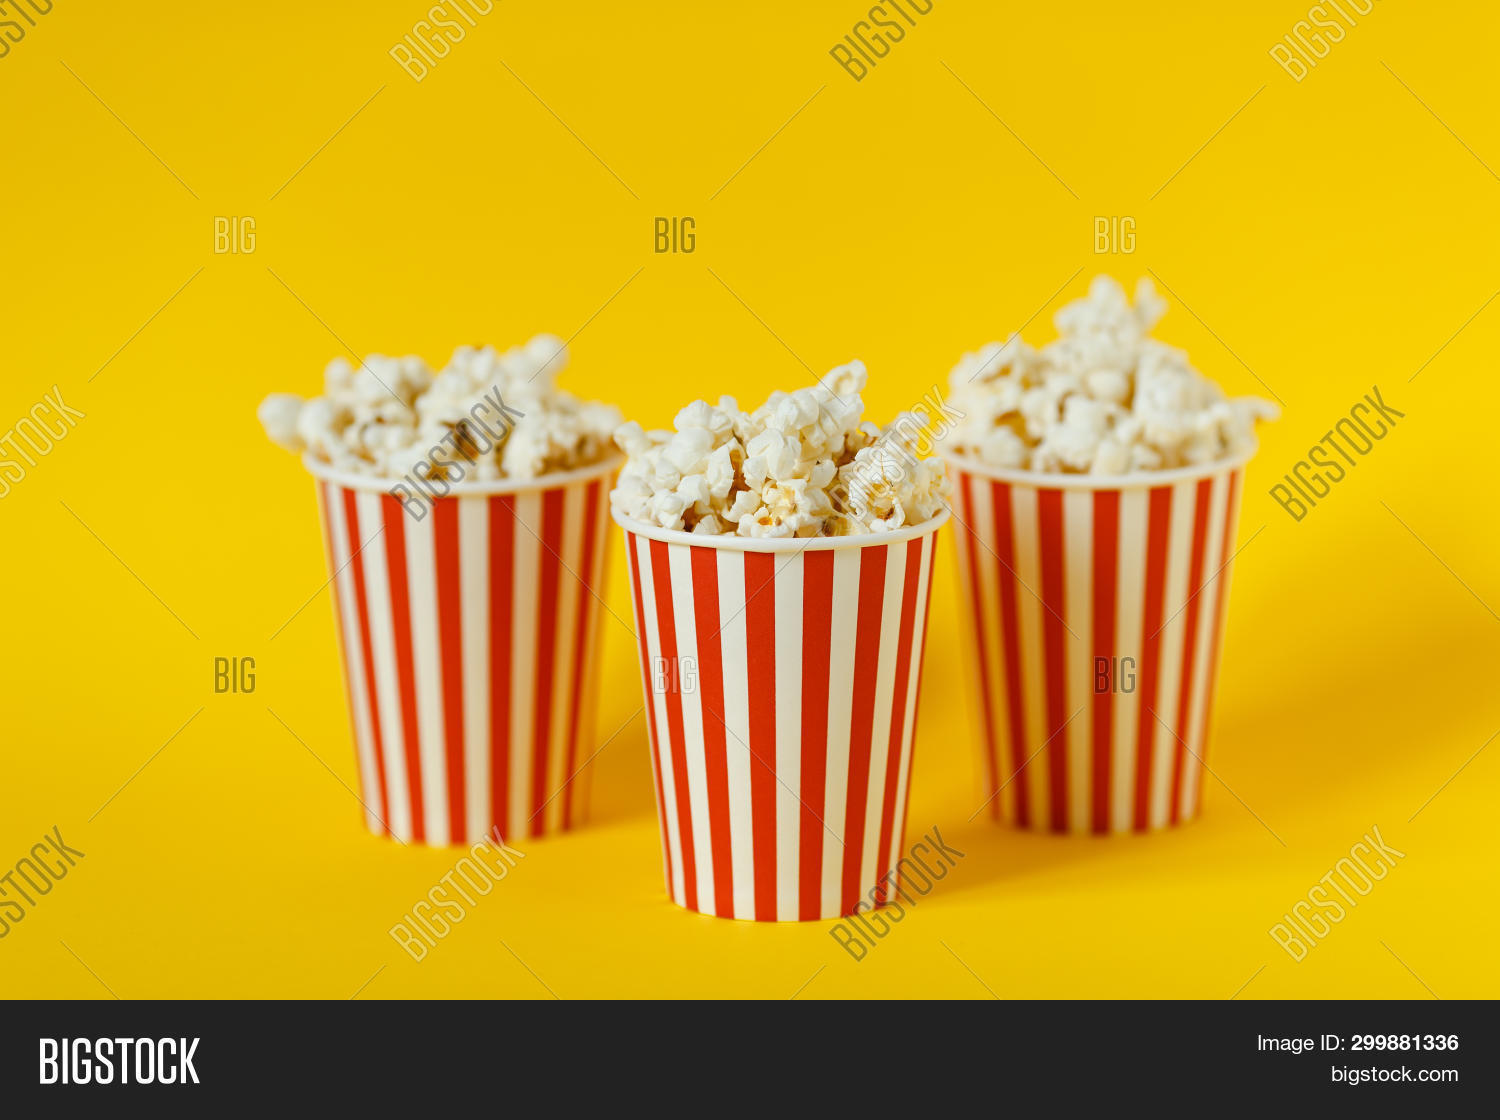 Three Carton Bucket Image Photo Free Trial Bigstock